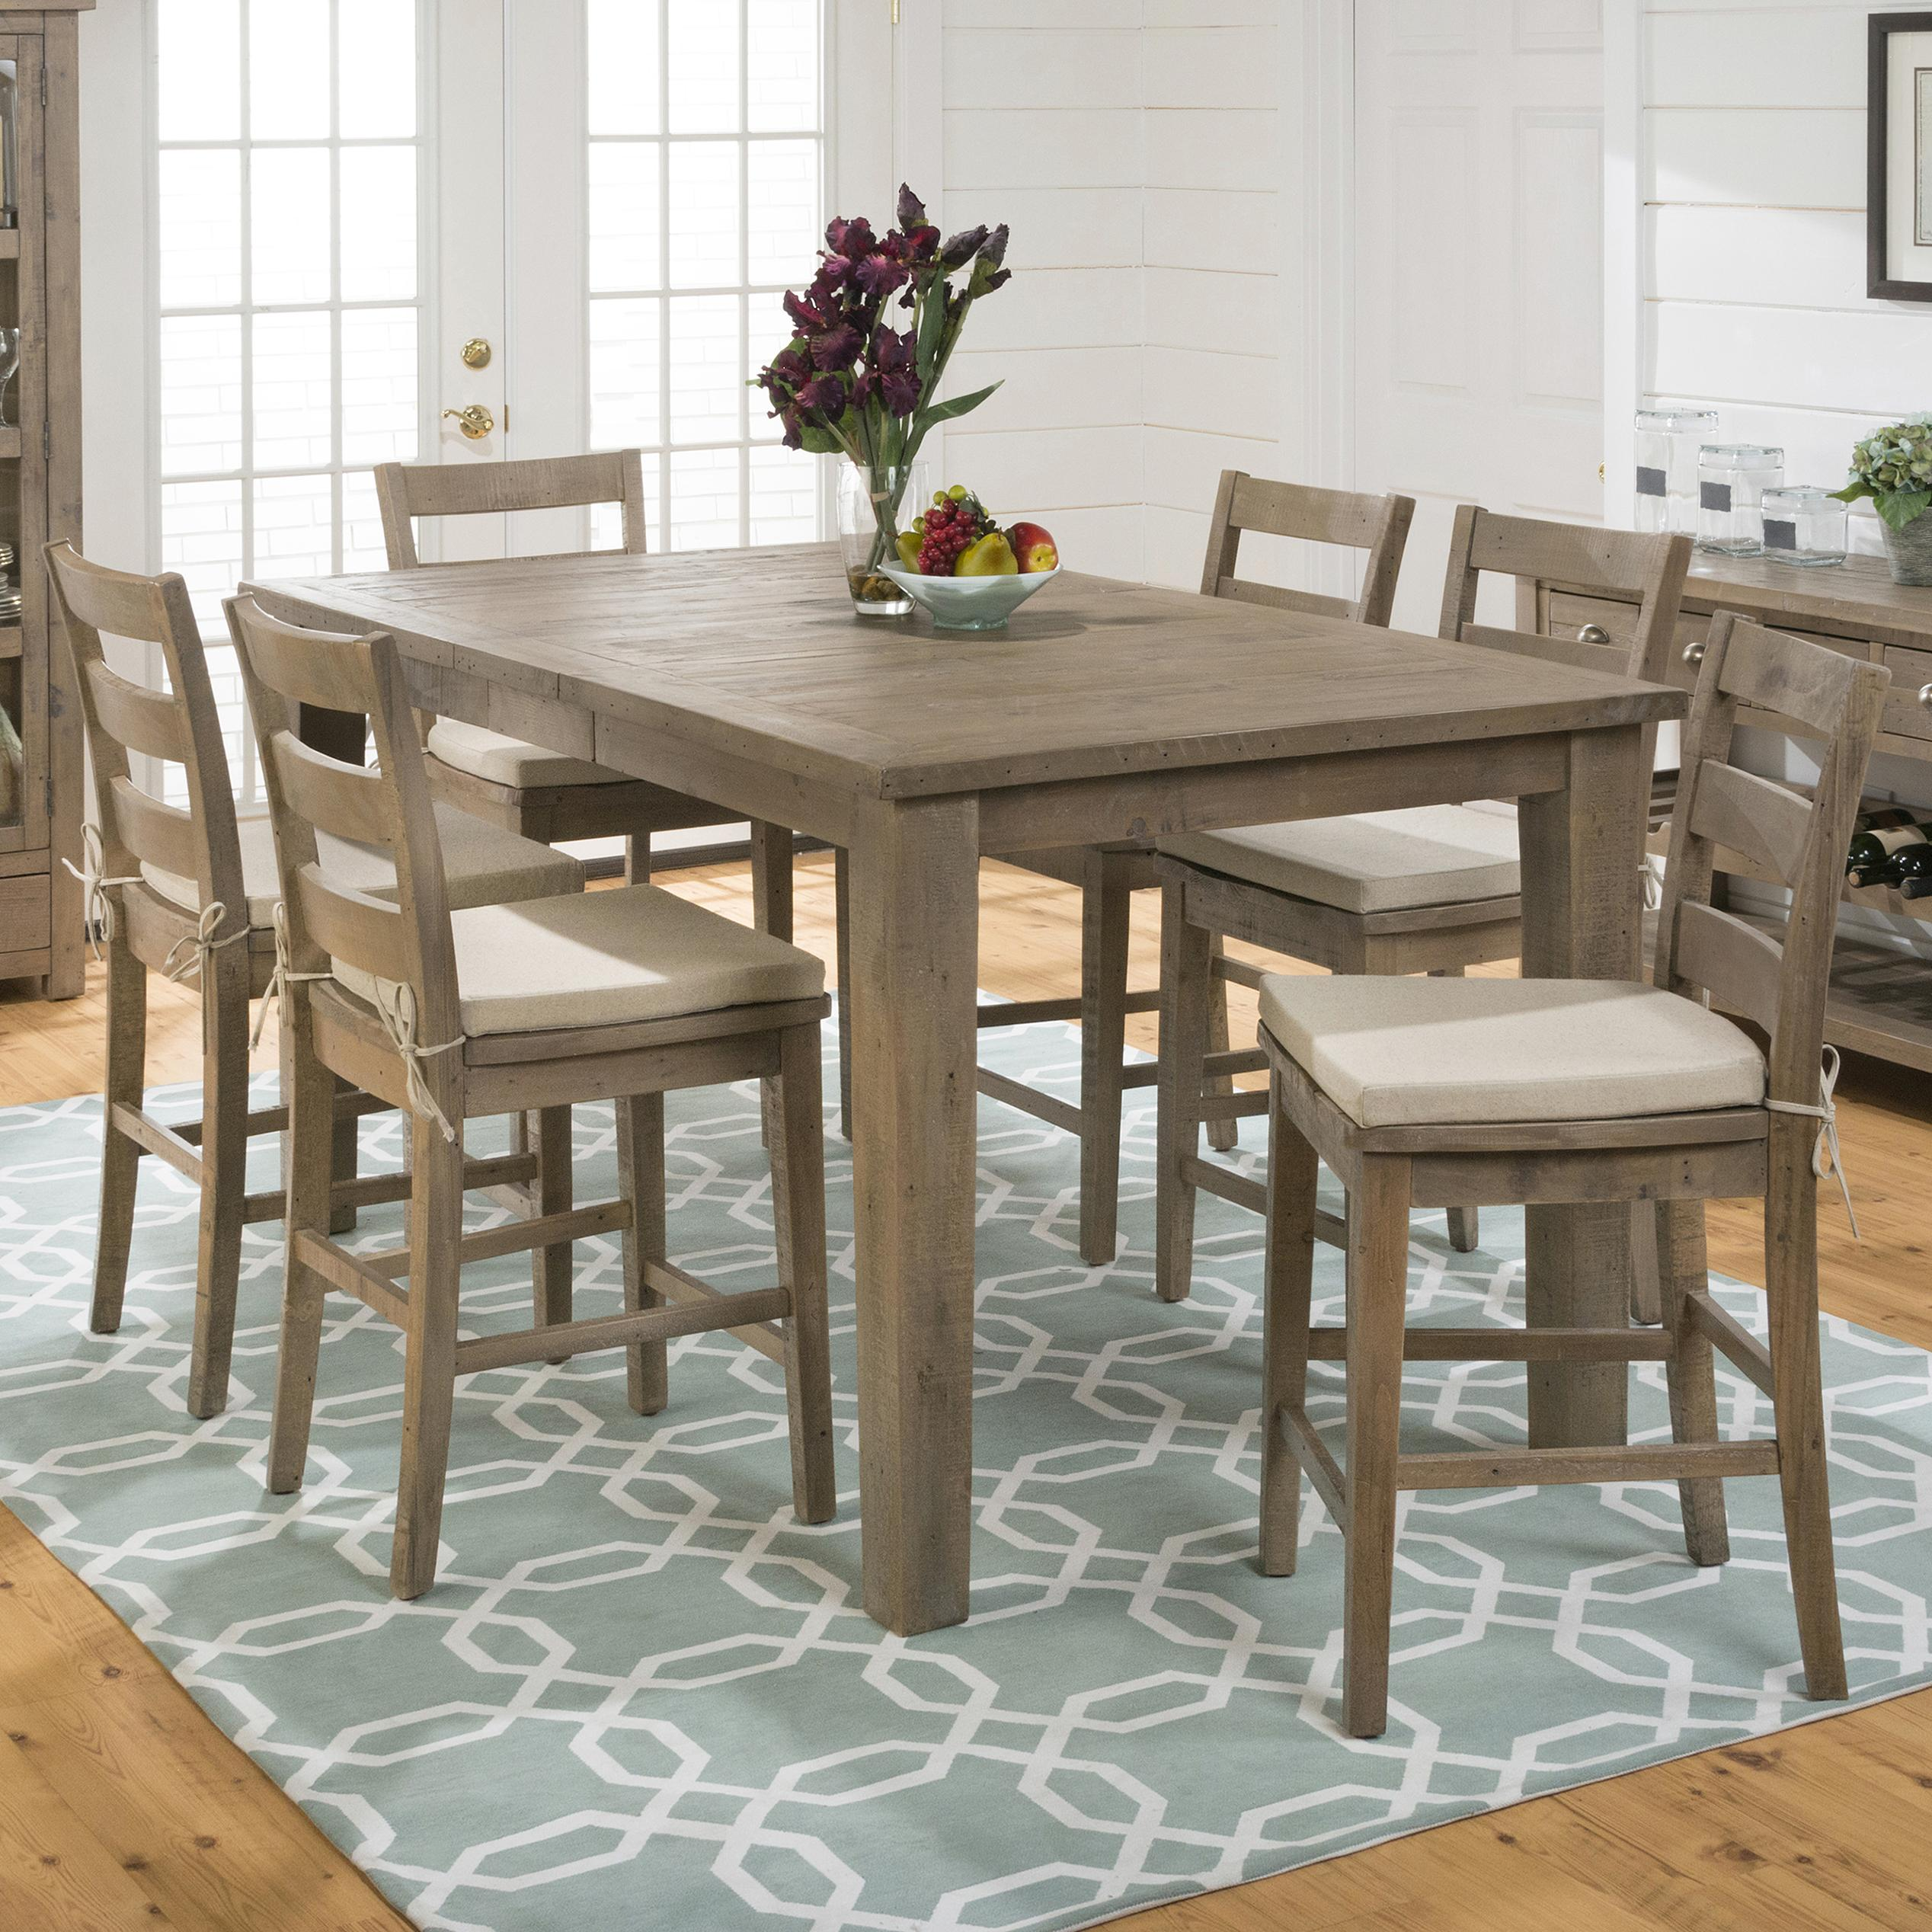 Jofran Slater Mill Pine 7-Piece Dining Set - Item Number: 941-42+6xBS538KD+6xCUSHION-941